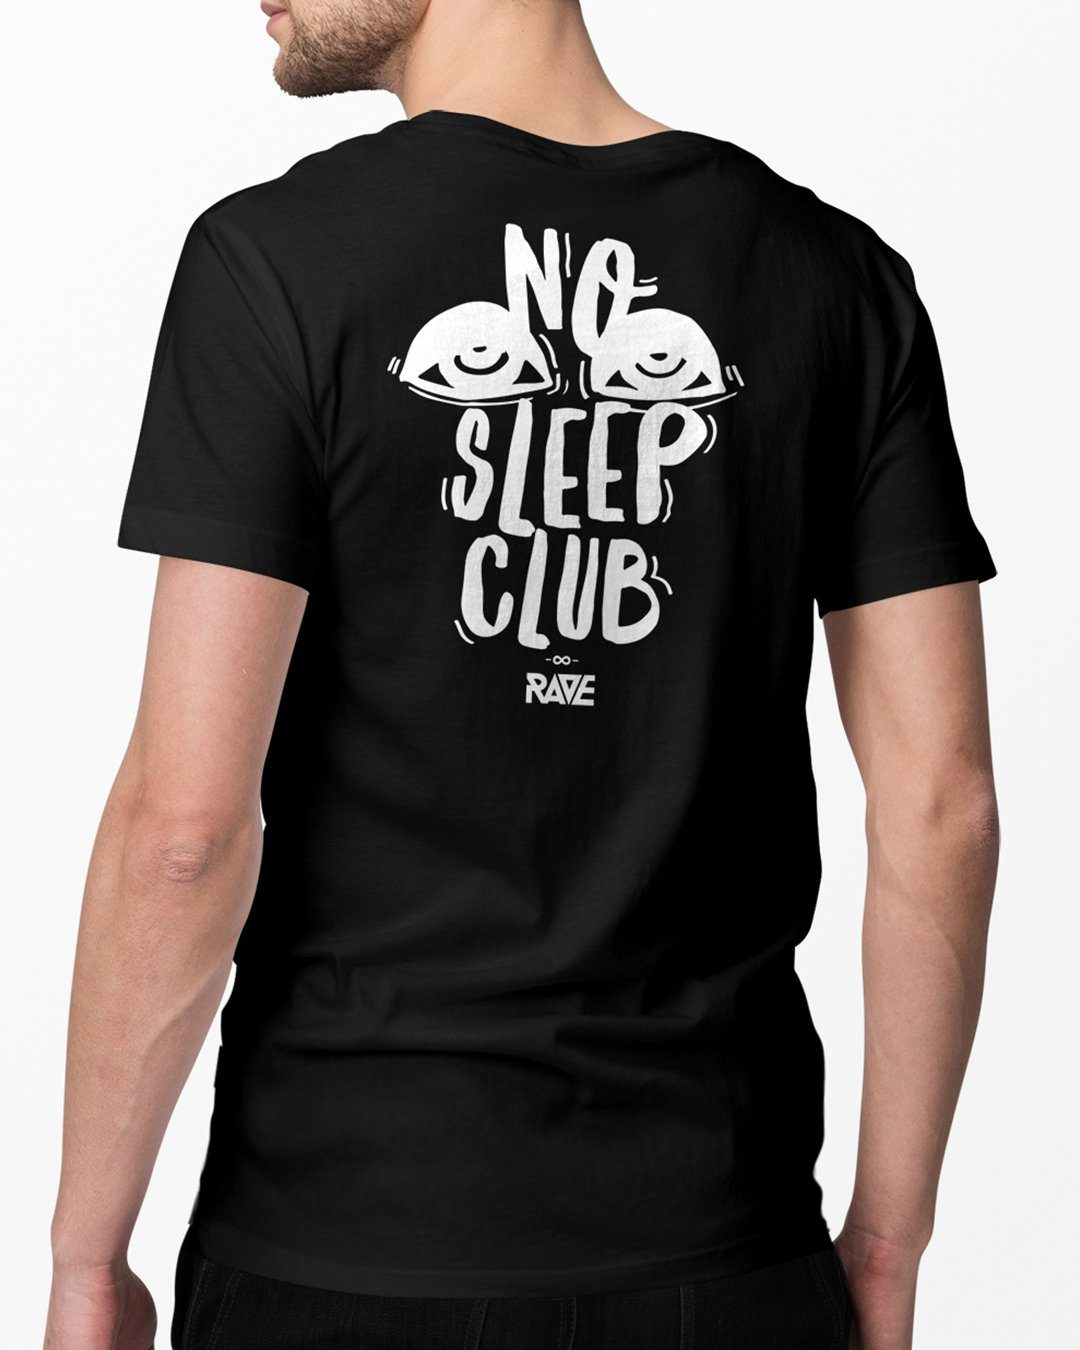 No Sleep Club T-Shirt in black by RAVE Clothing